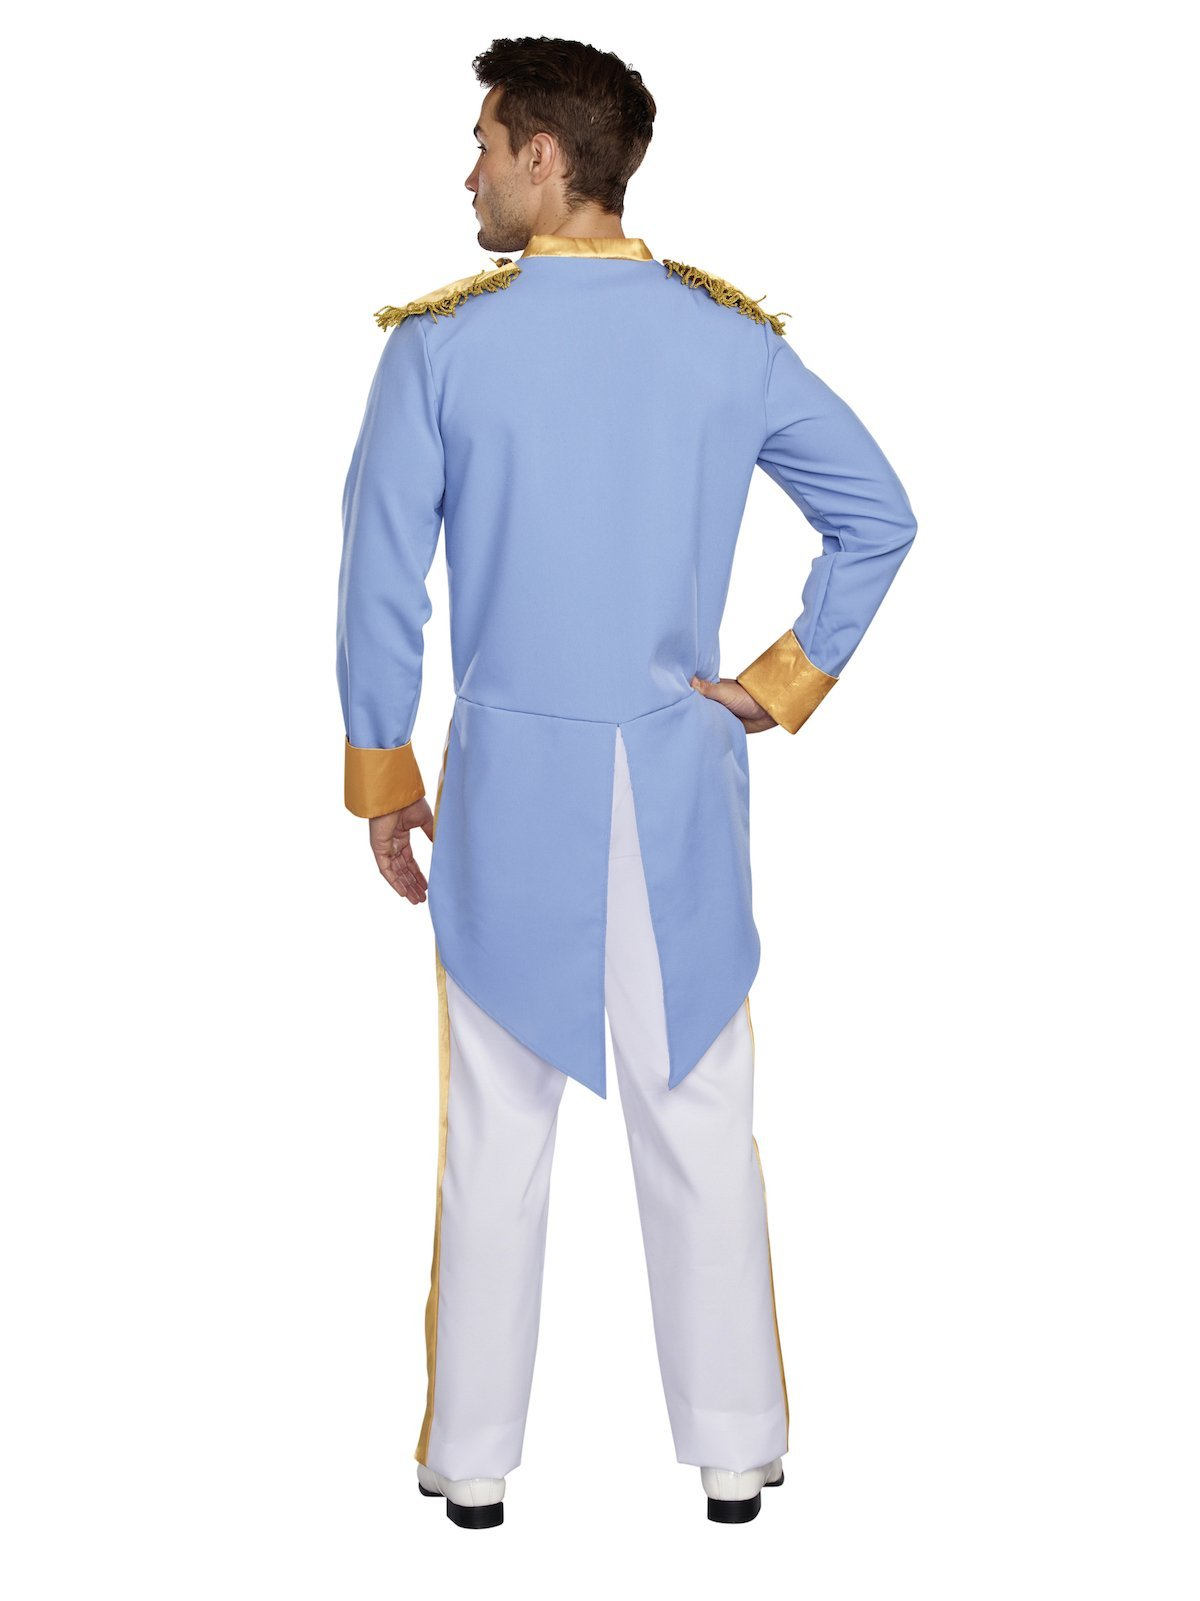 Dreamgirl costumes Dreamgirl Men's Handsome Prince Costume